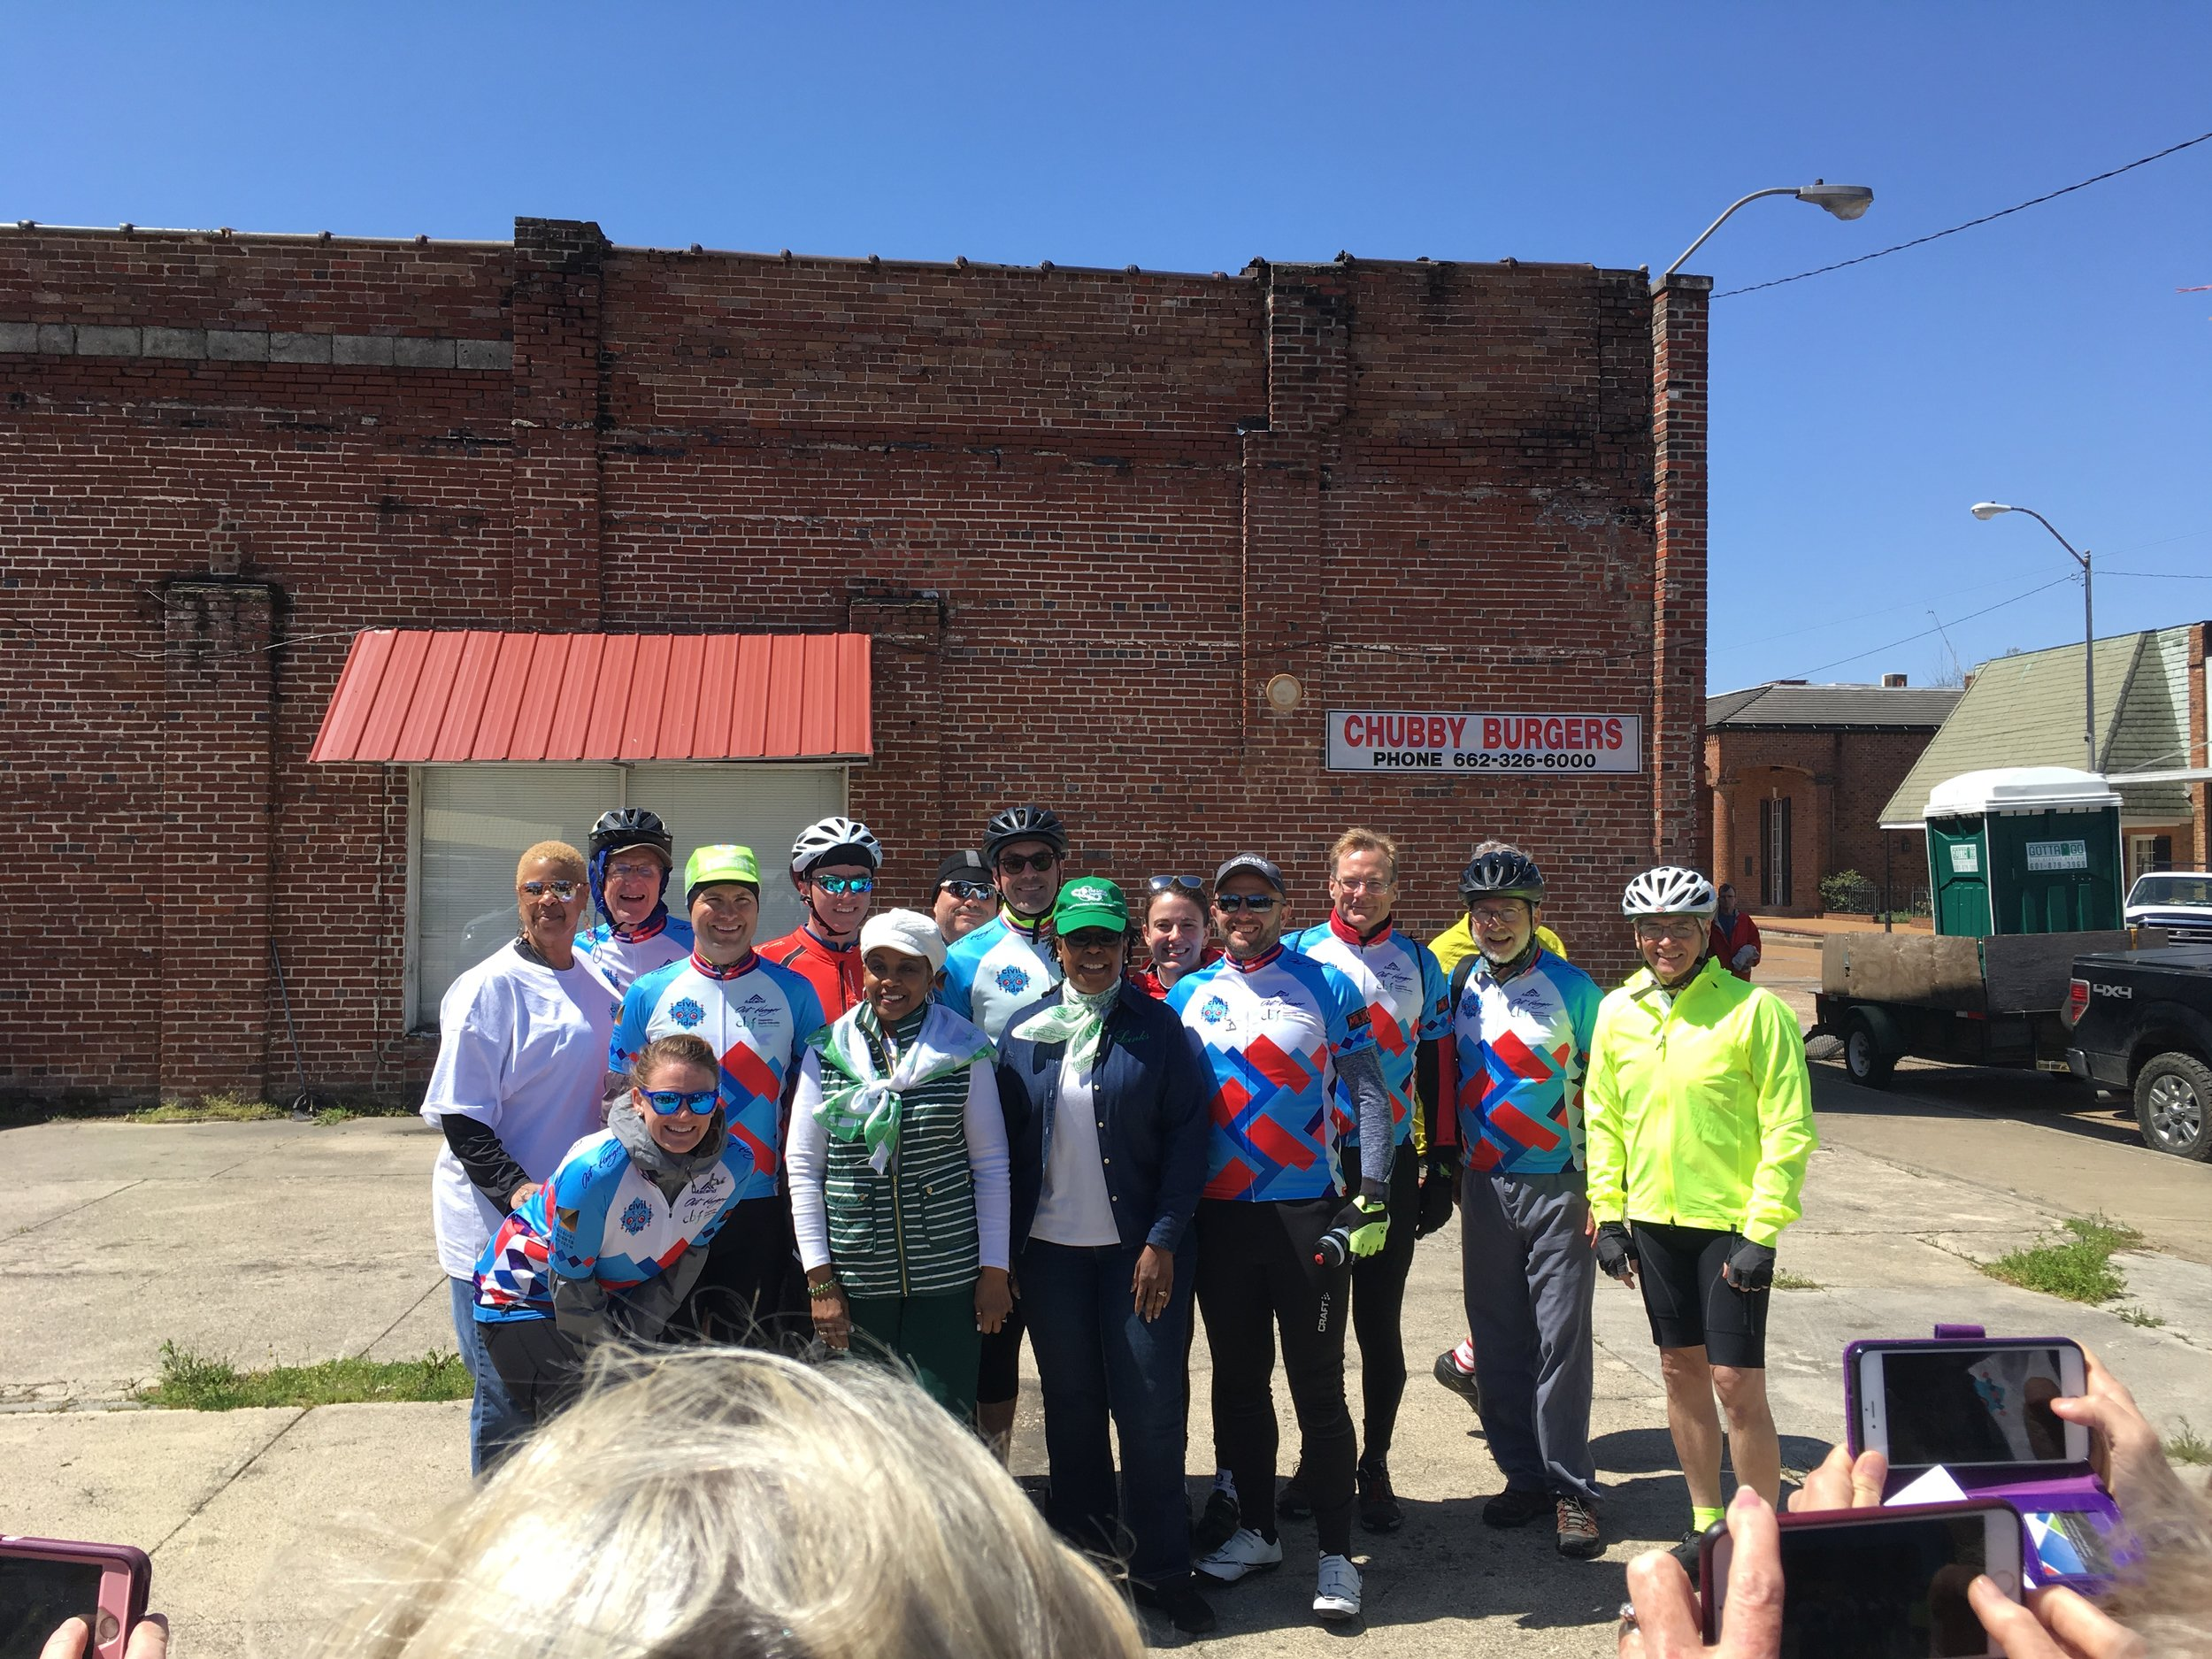 Riders leaving Marks, Ms for Cleveland, MS. In downtown Marks